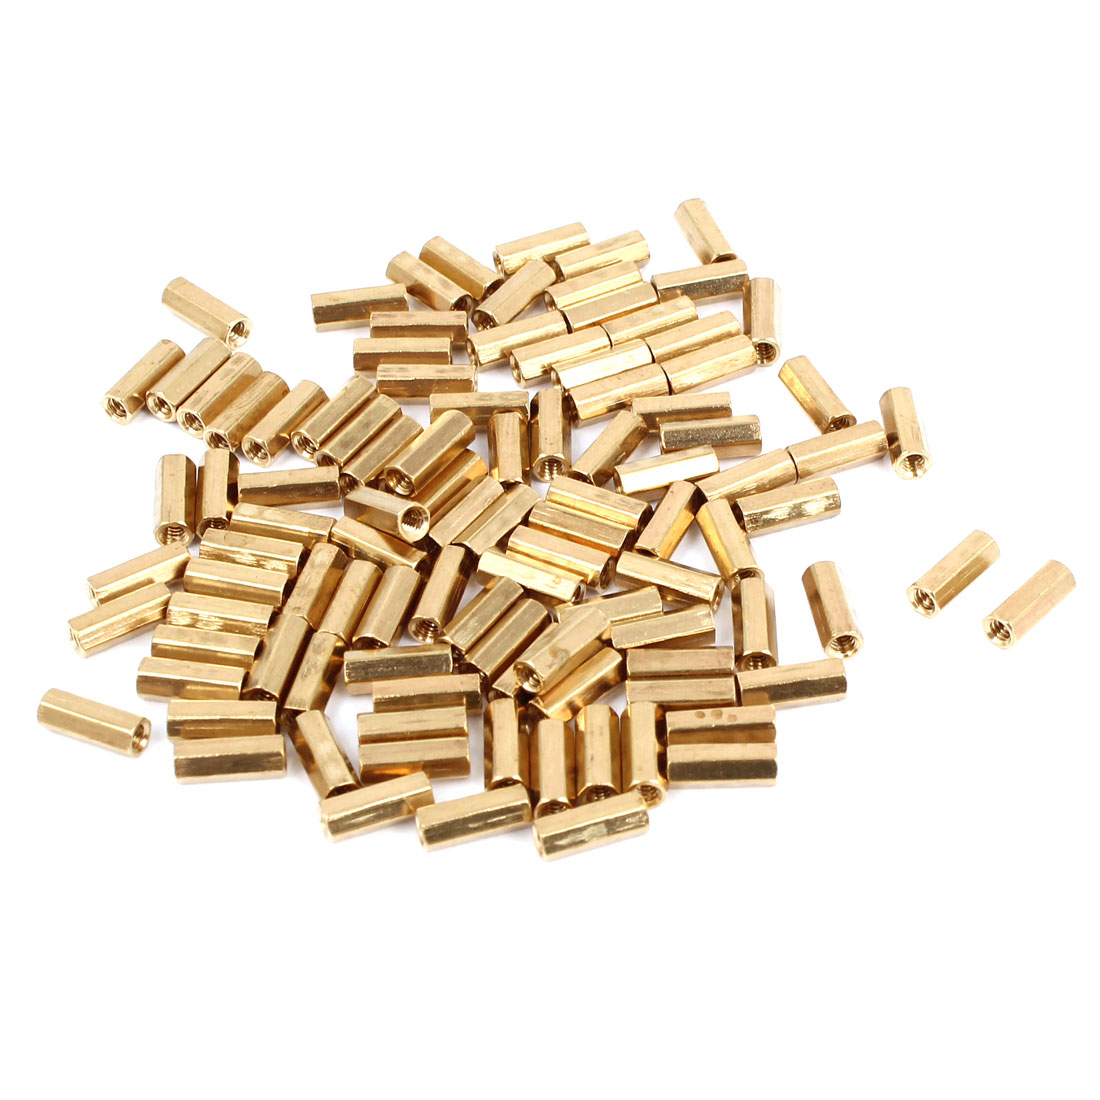 100 Pcs M2 Female Thread Brass Pillar Standoff Hexagonal Spacer 8mm Length